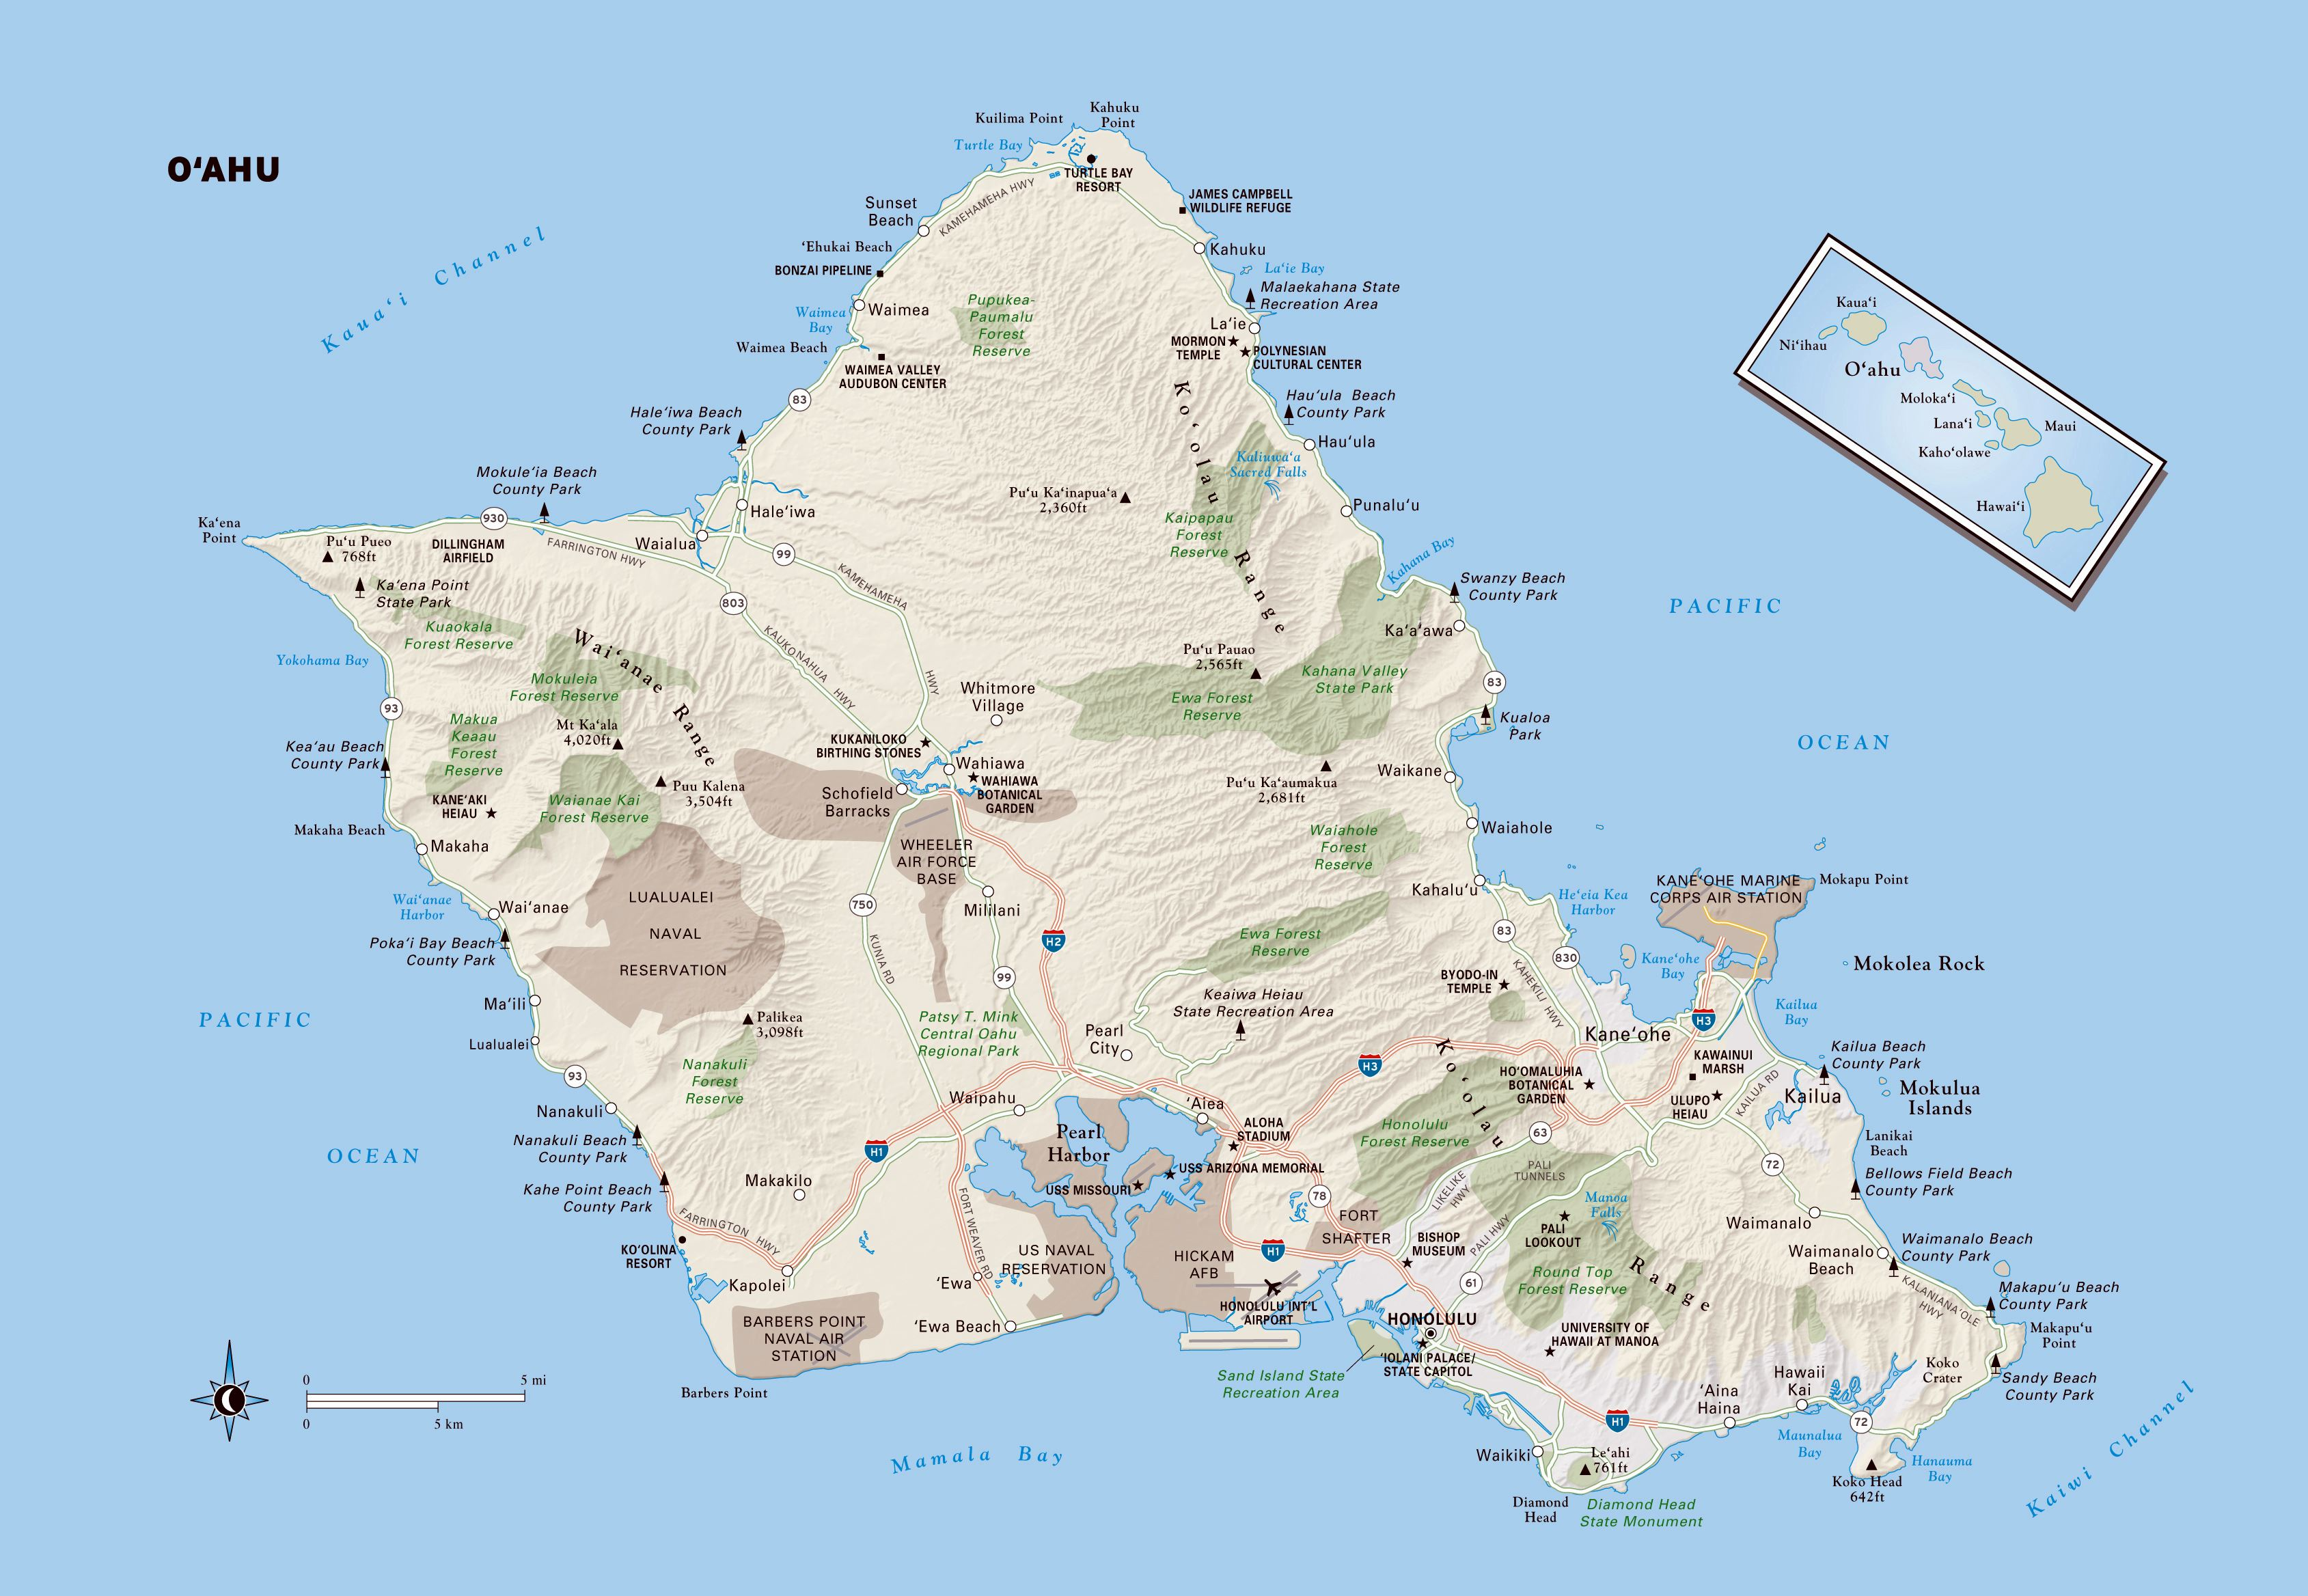 image relating to Oahu Map Printable identified as Higher Oahu Island Maps for Absolutely free Down load and Print Large